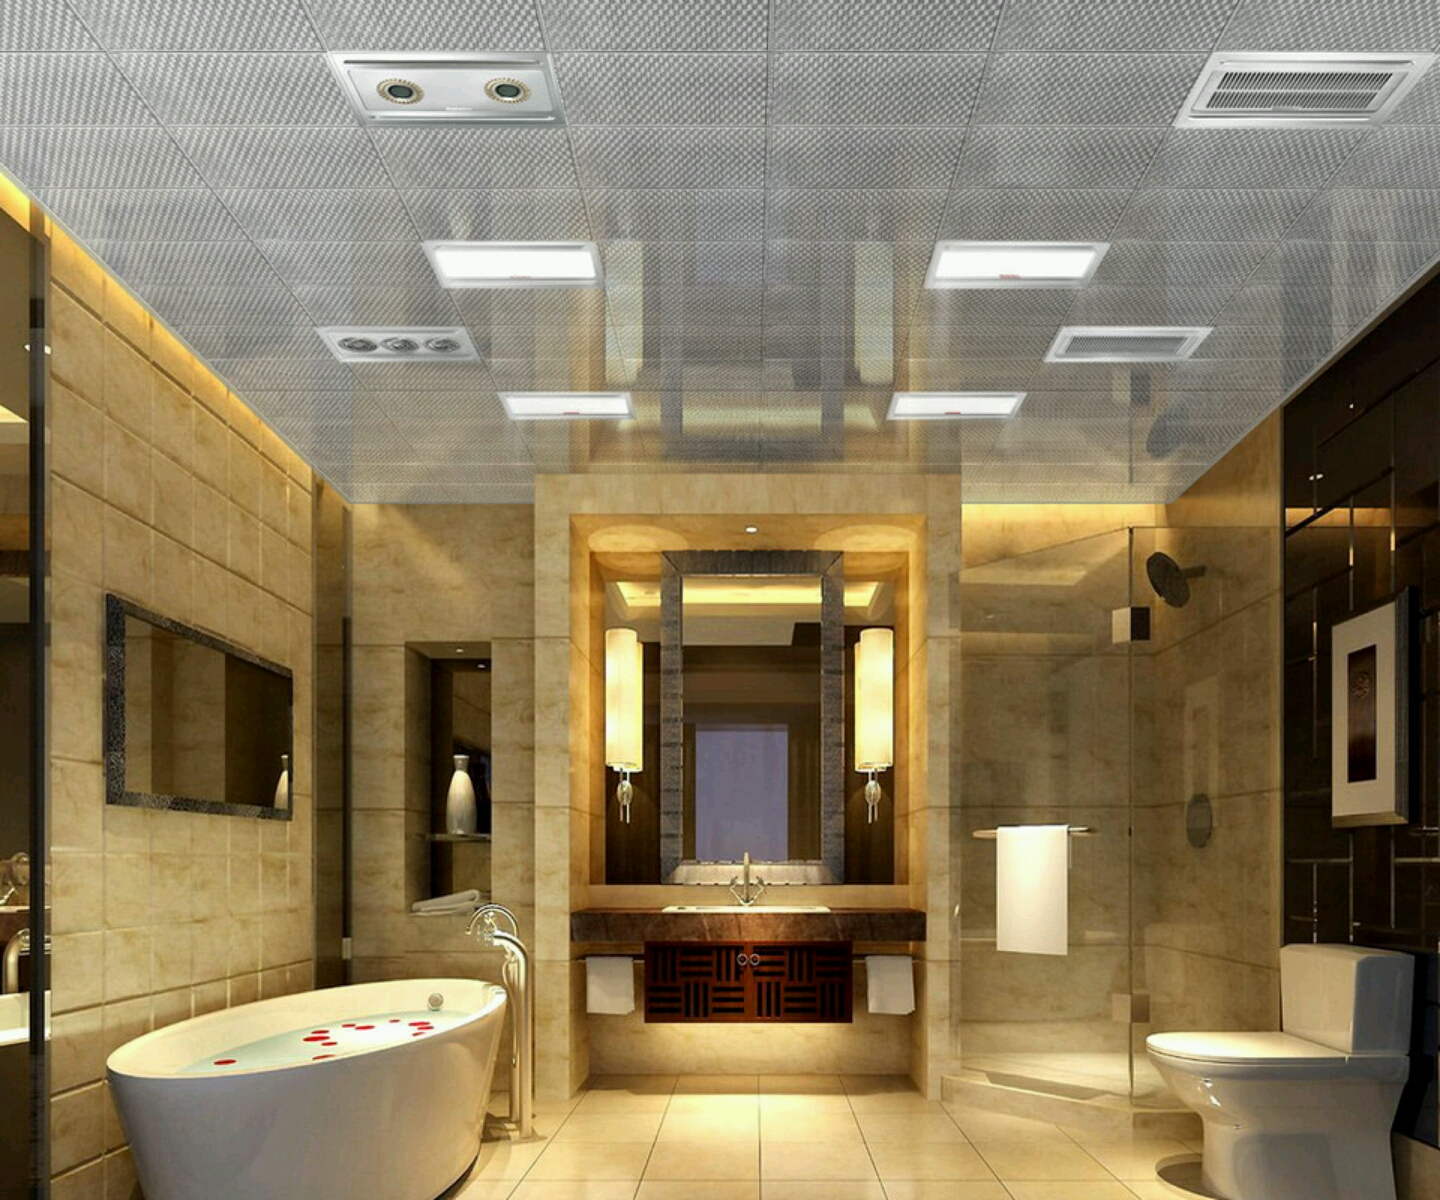 30 beautiful pictures and ideas high end bathroom tile designs for Restroom design ideas